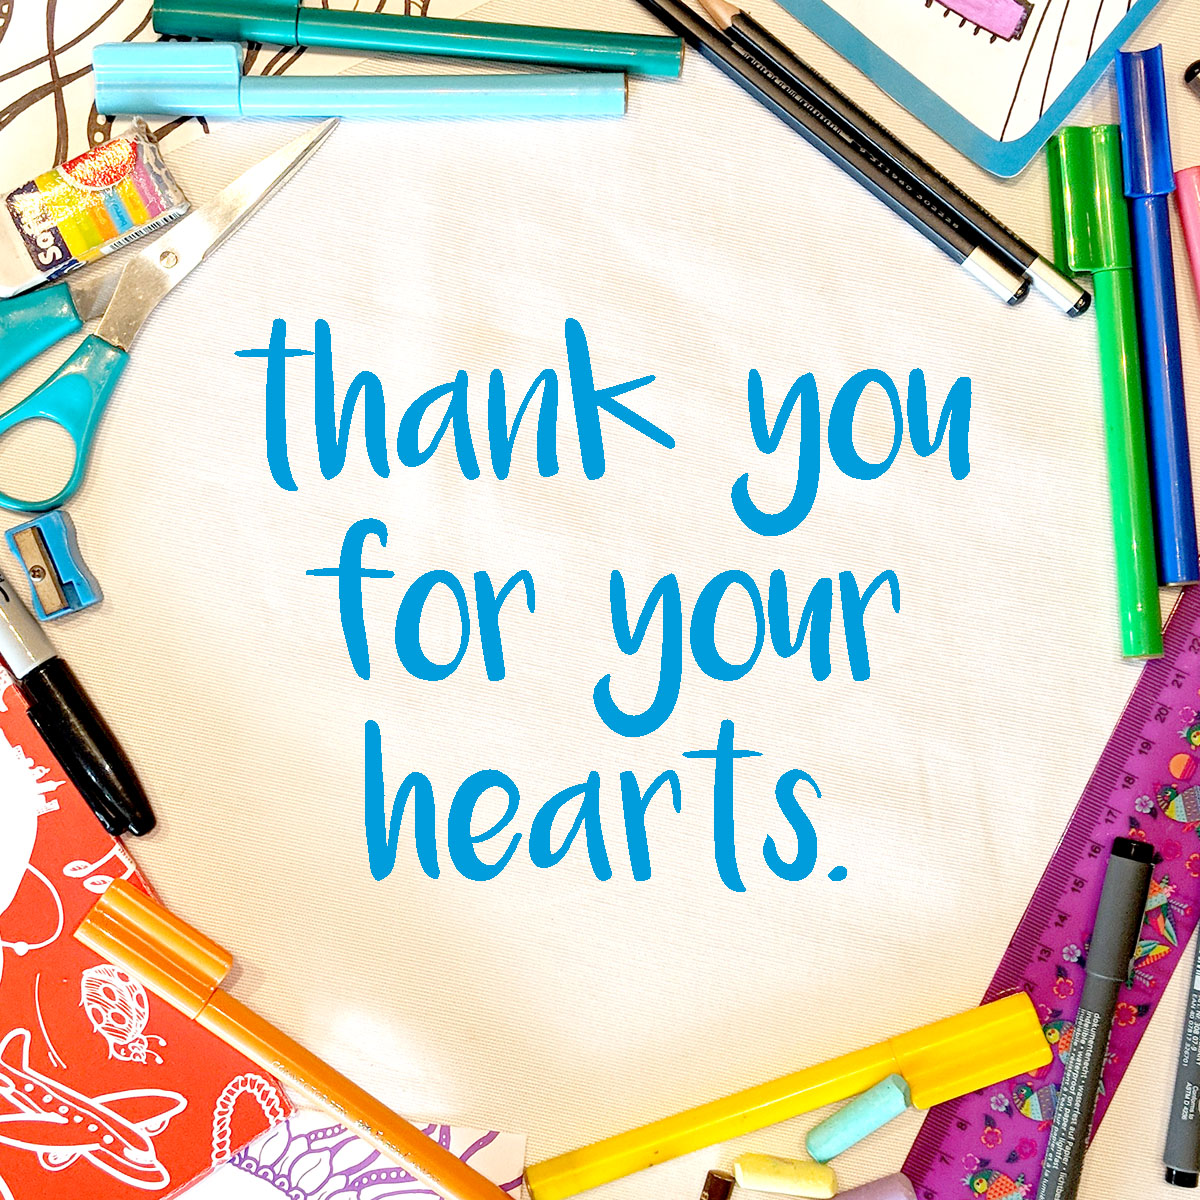 Thank you for your hearts.jpg